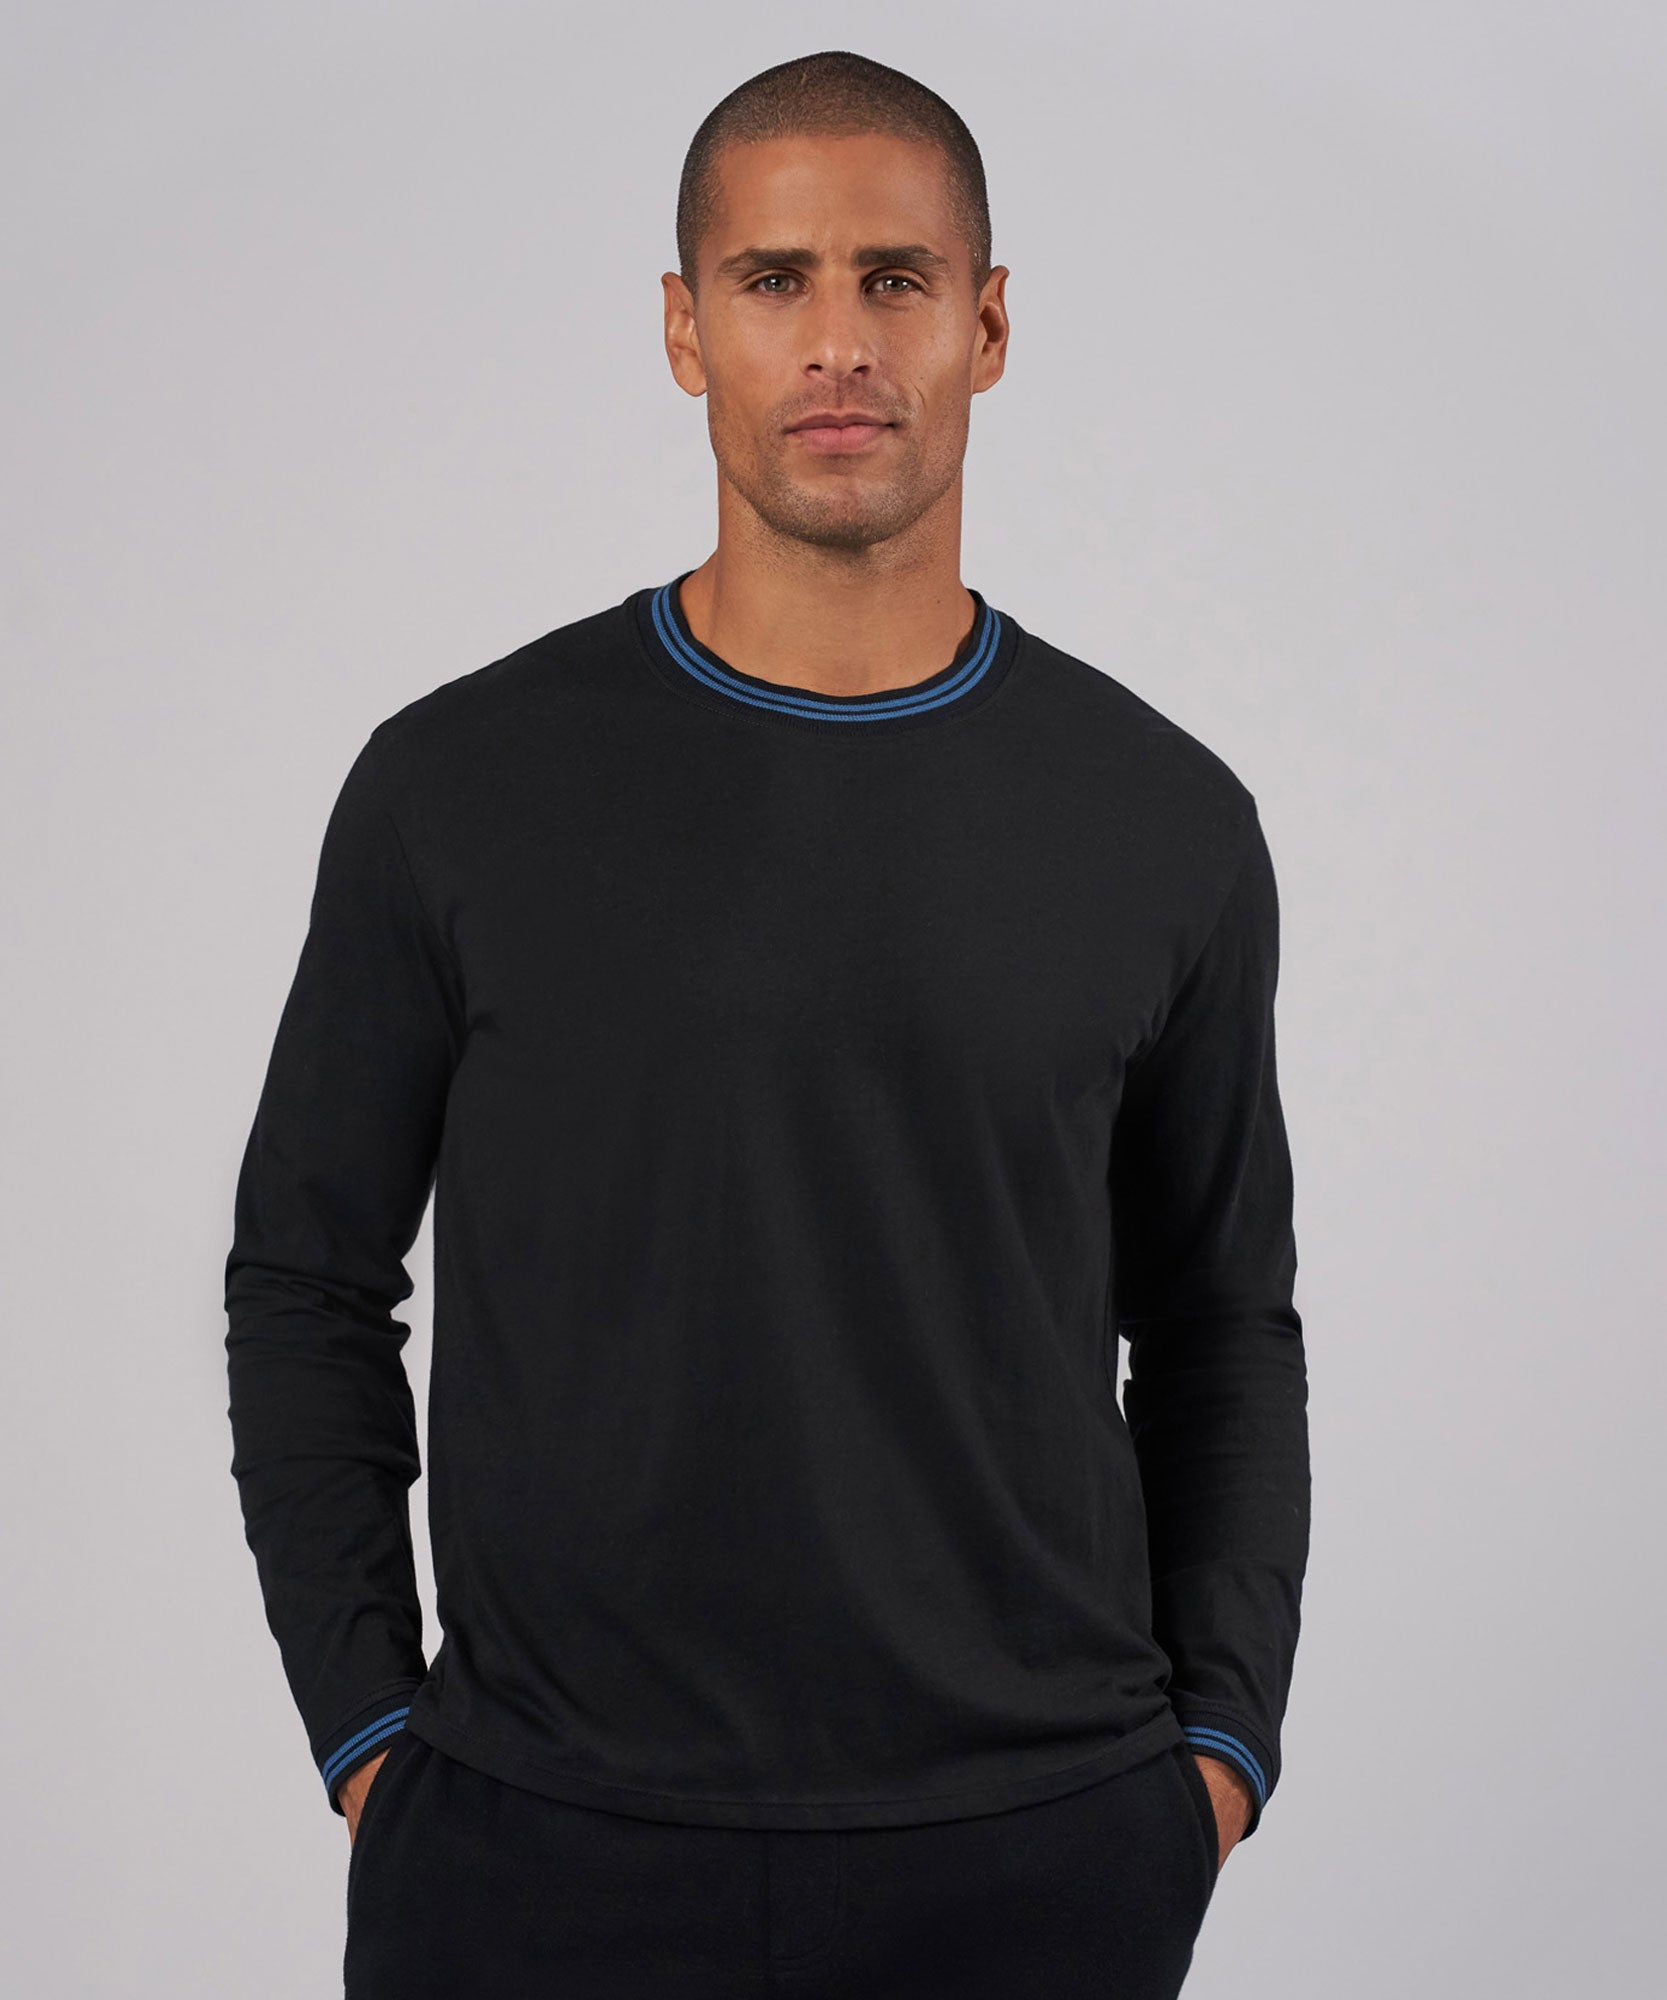 Black/ Fiji Combo Classic Jersey Long Sleeve Crew Neck Tee - Men's Cotton Long Sleeve Tee by ATM Anthony Thomas Melillo